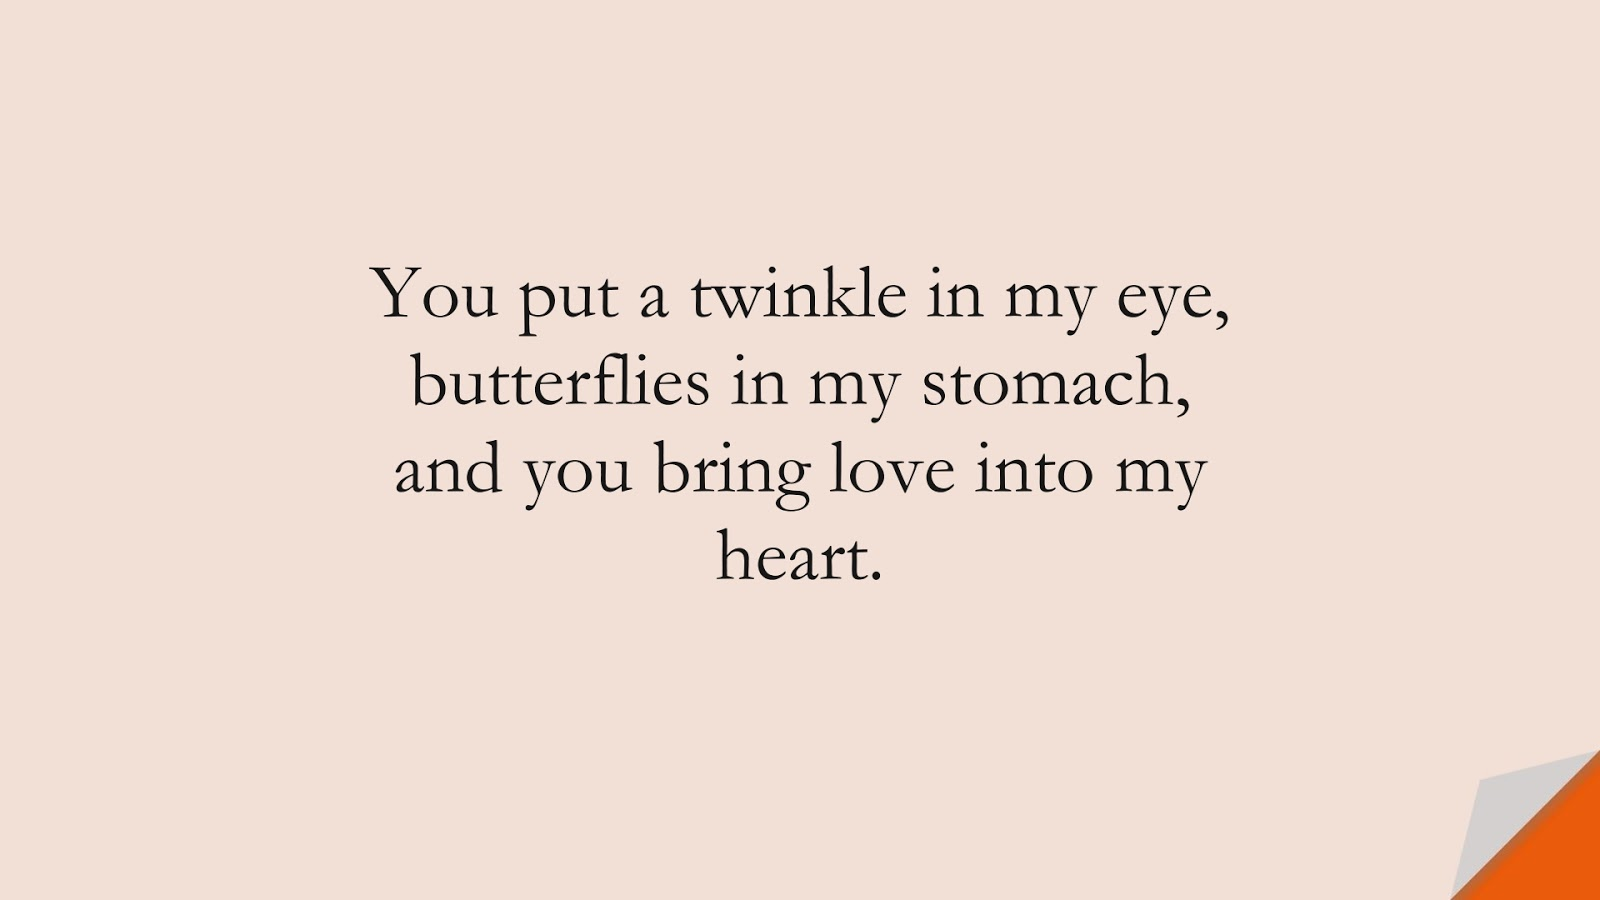 You put a twinkle in my eye, butterflies in my stomach, and you bring love into my heart.FALSE